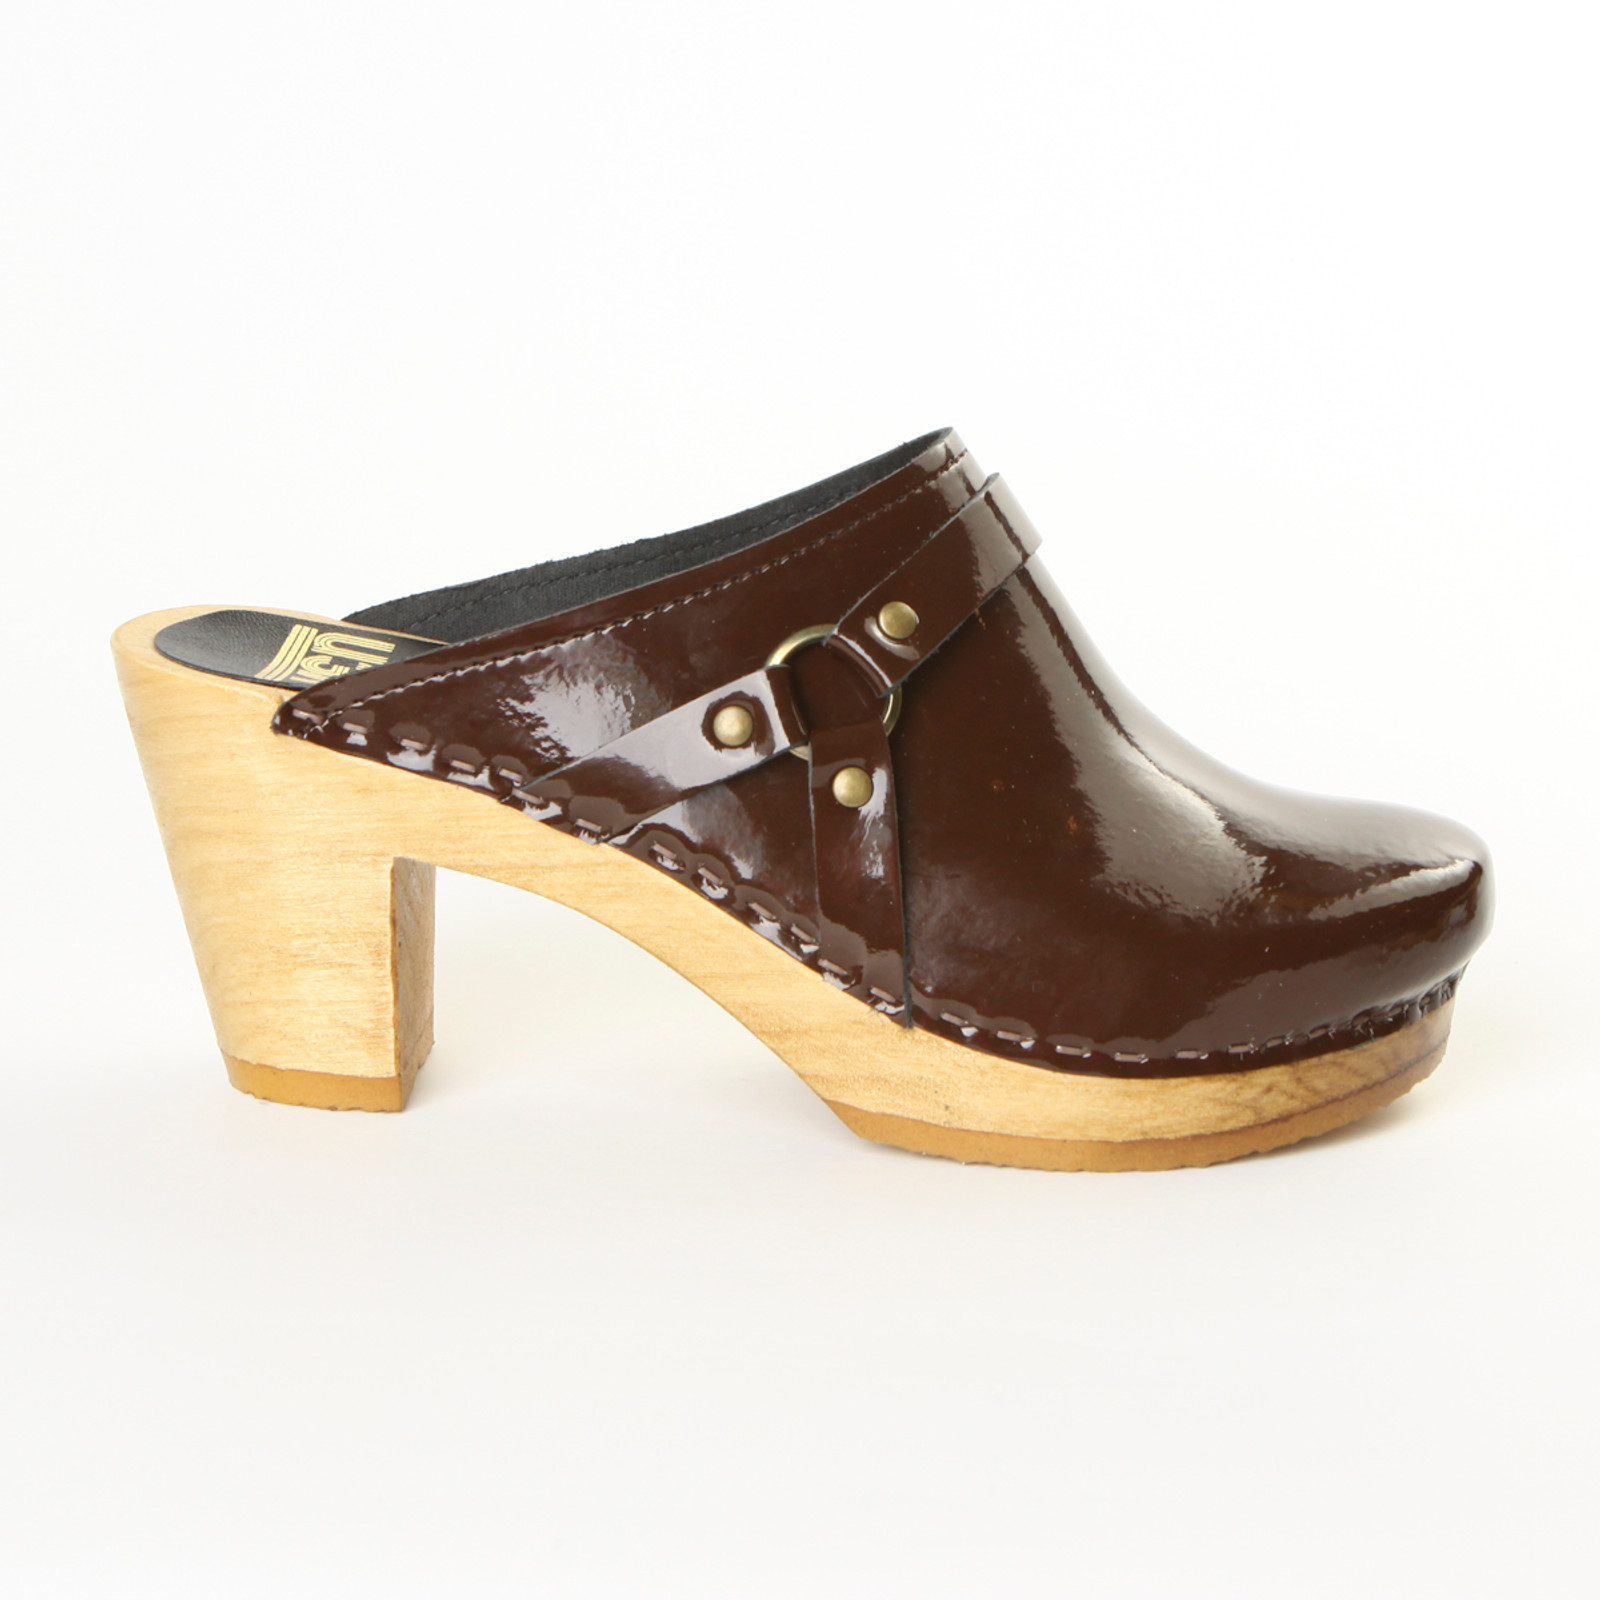 Chocolate Patent Leather with Brown Base